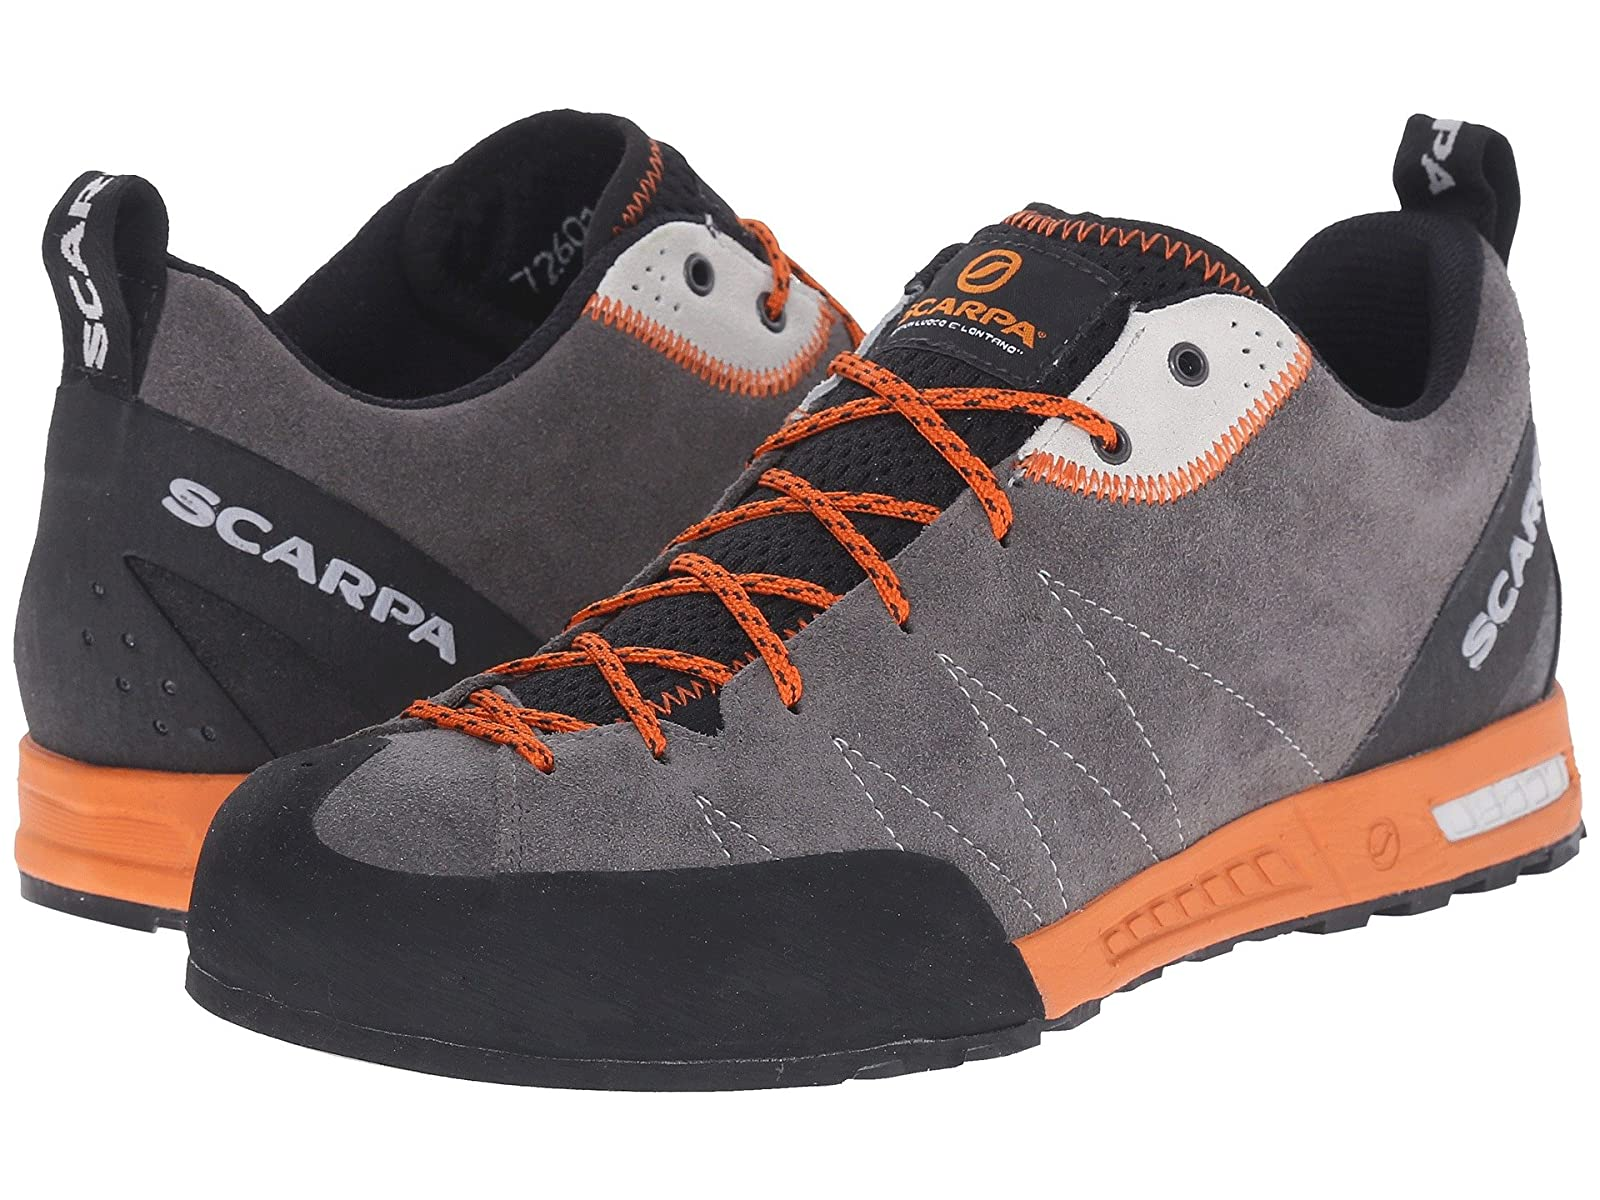 Scarpa 72601Atmospheric grades have affordable shoes